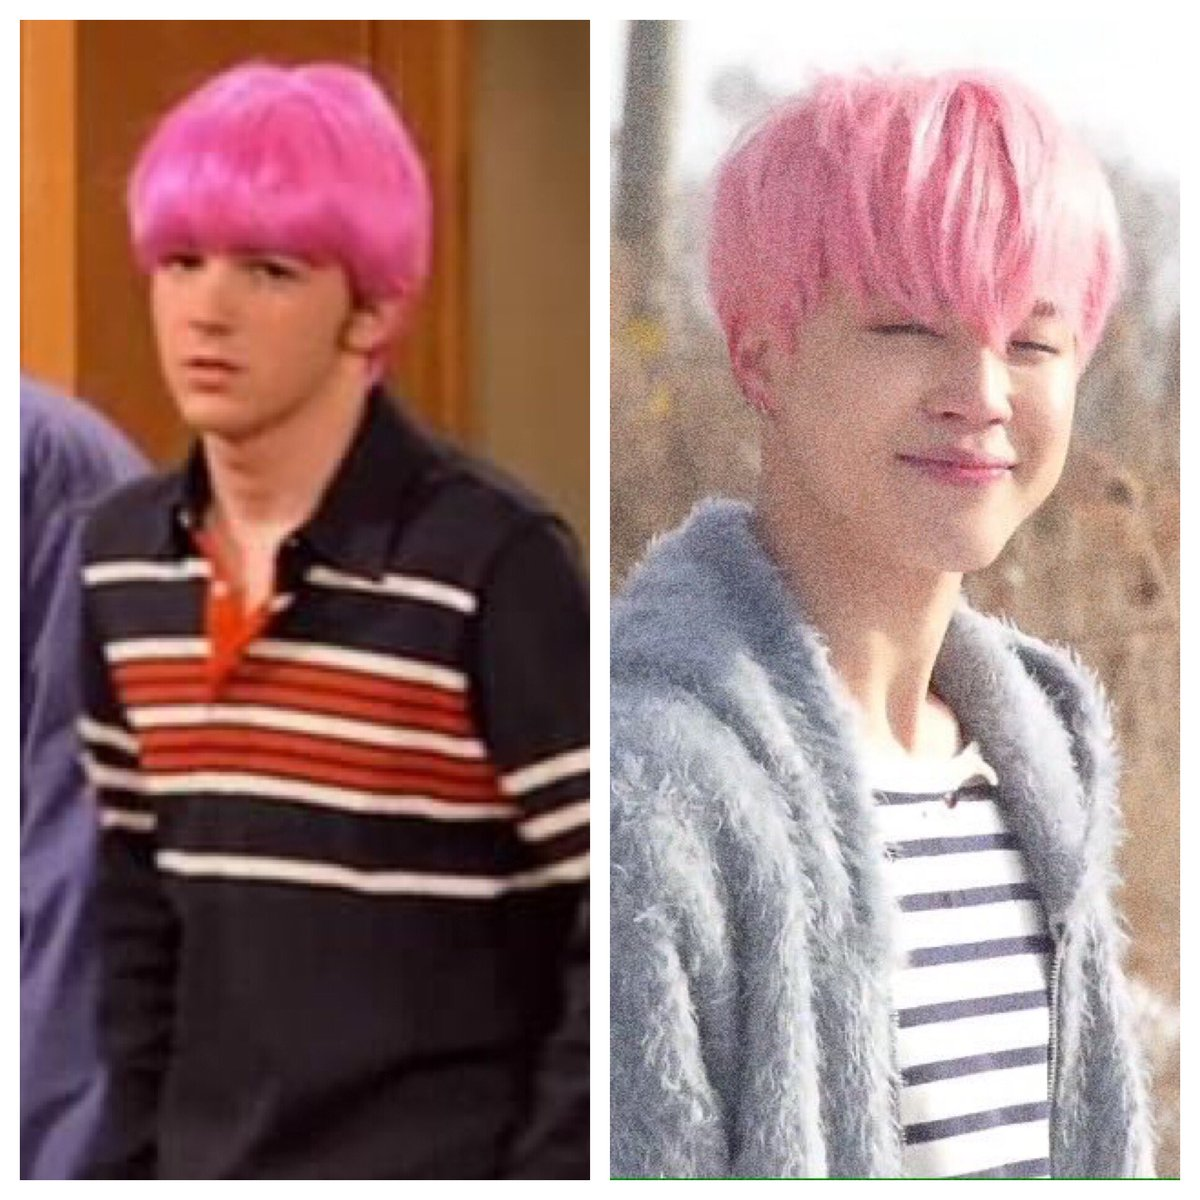 Who wore it better? Haha @BTS_twt